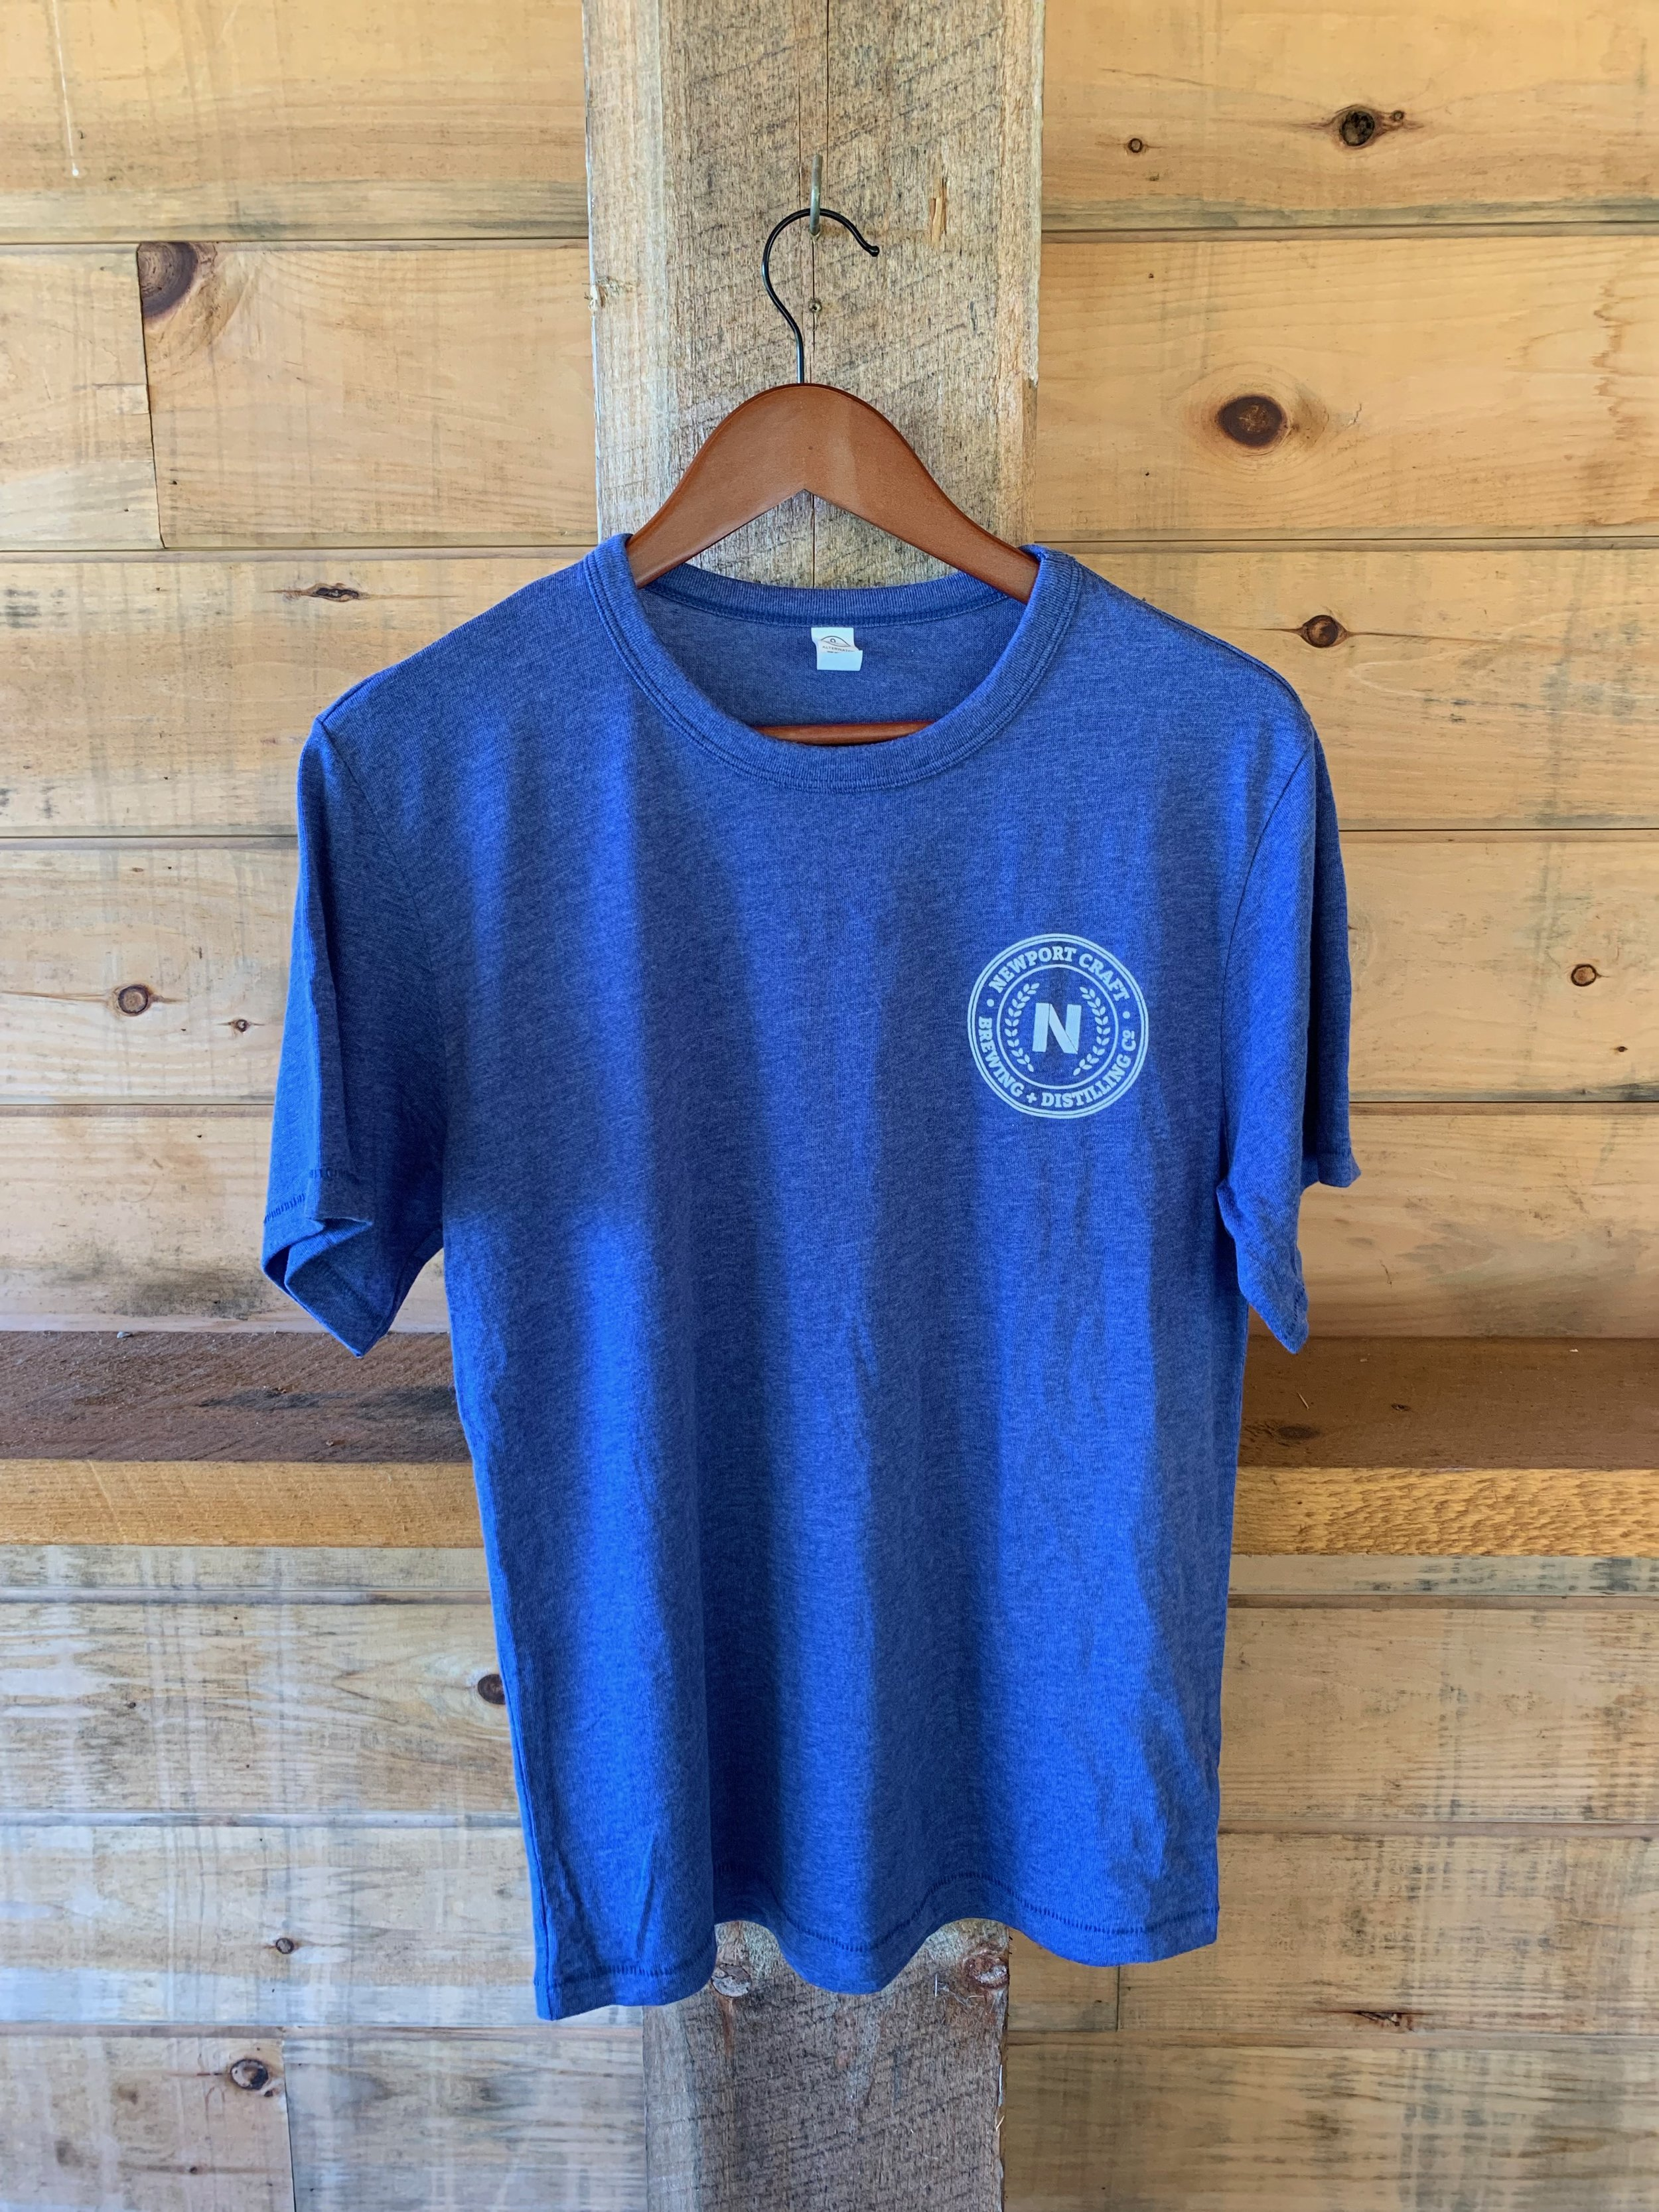 Royal Blue t-shirt $20 - Available in XS-XXL.